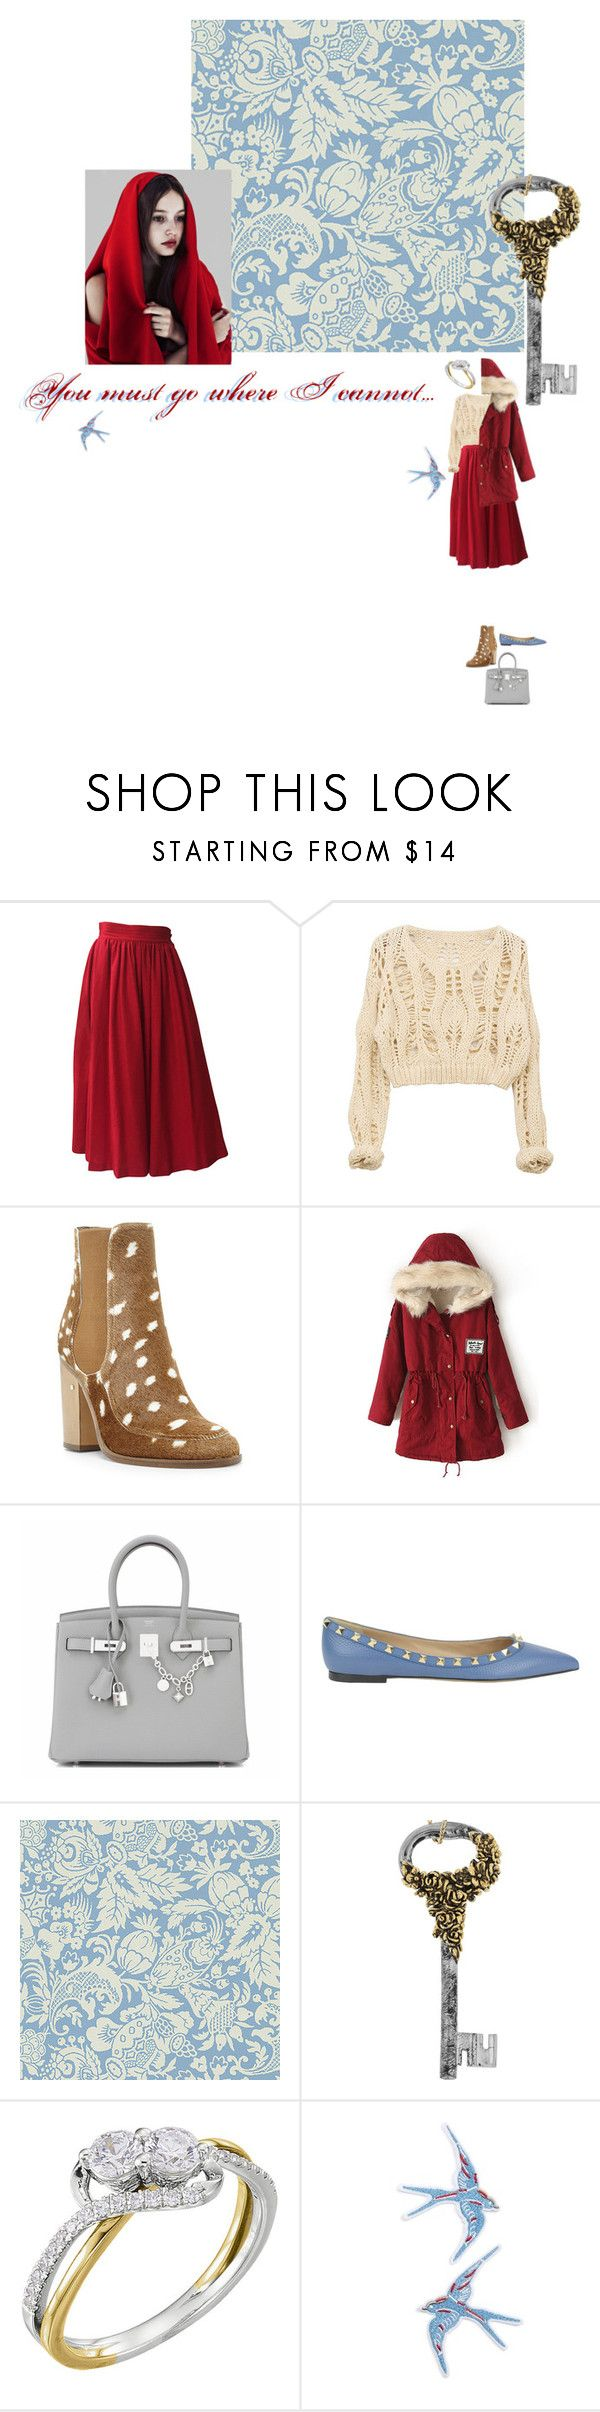 """""""Сон о пути домой, да не со мной..."""" by anya-moscow ❤ liked on Polyvore featuring Yves Saint Laurent, Laurence Dacade, Hermès, Valentino, Roberto Cavalli, Topshop, set, look and fashionset"""